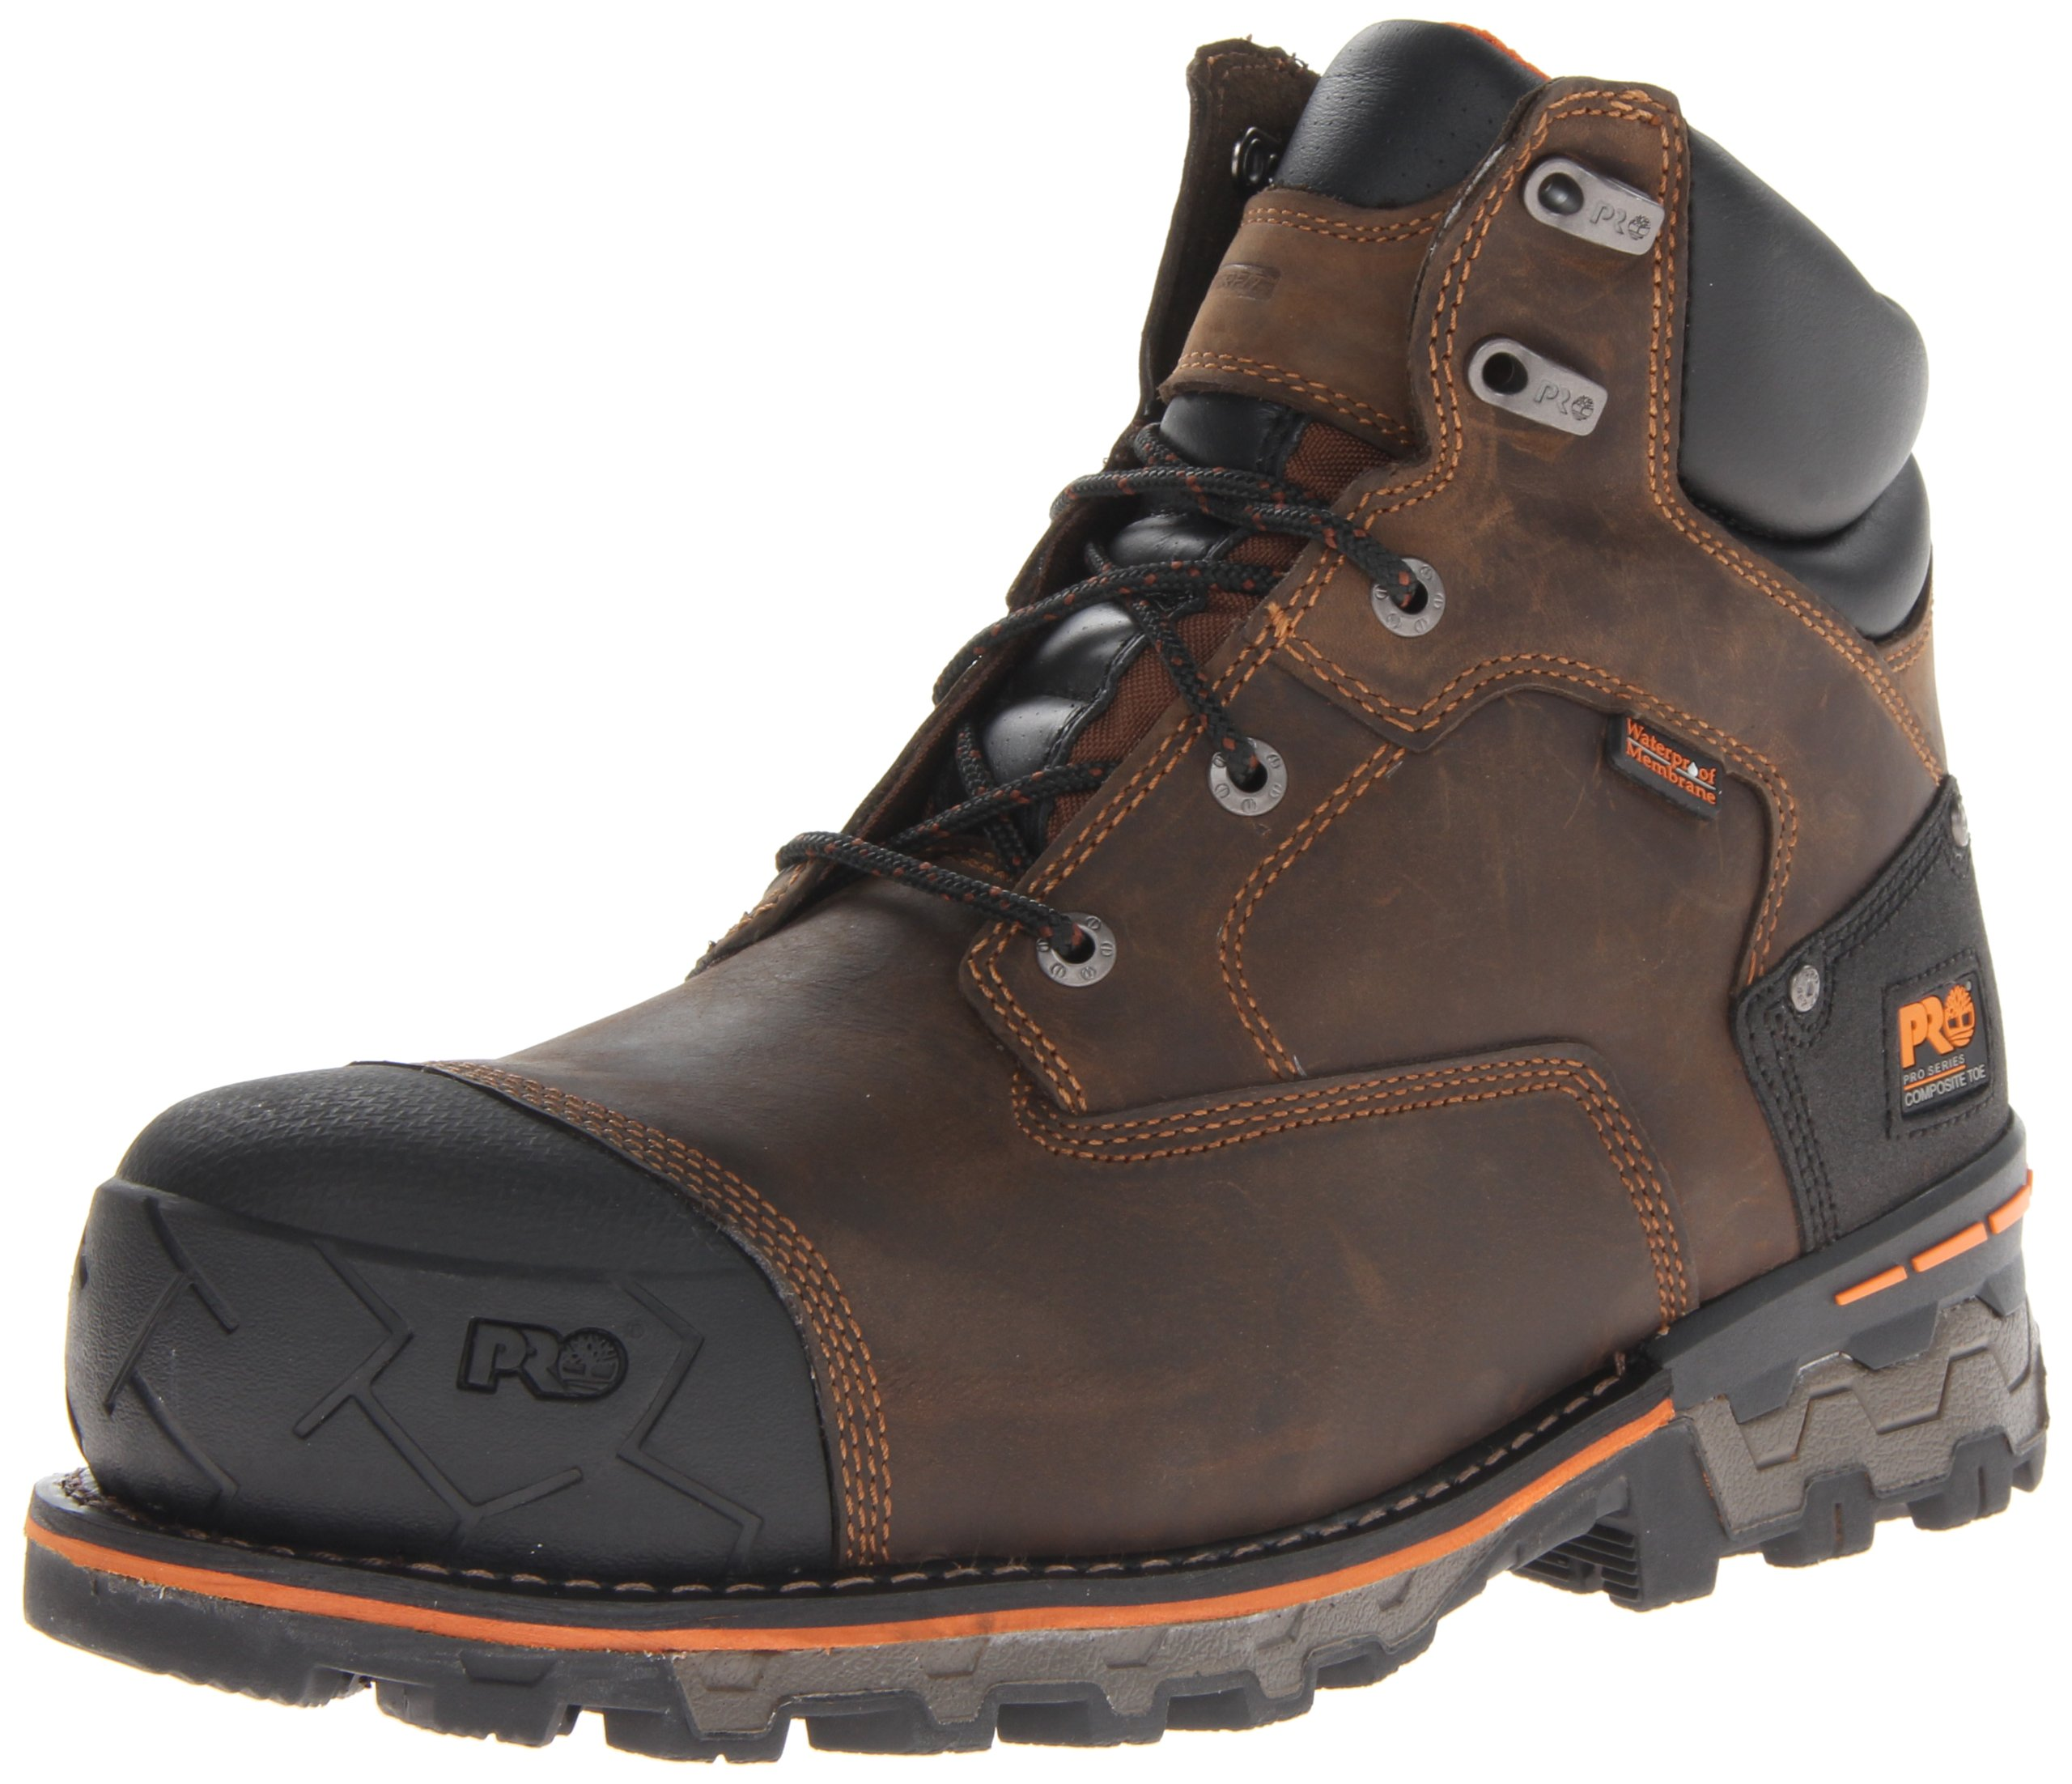 Timberland PRO Men's Boondock 6 Inch Waterproof Non-Insulated Work Boot,Brown Oiled Distressed,11 M US